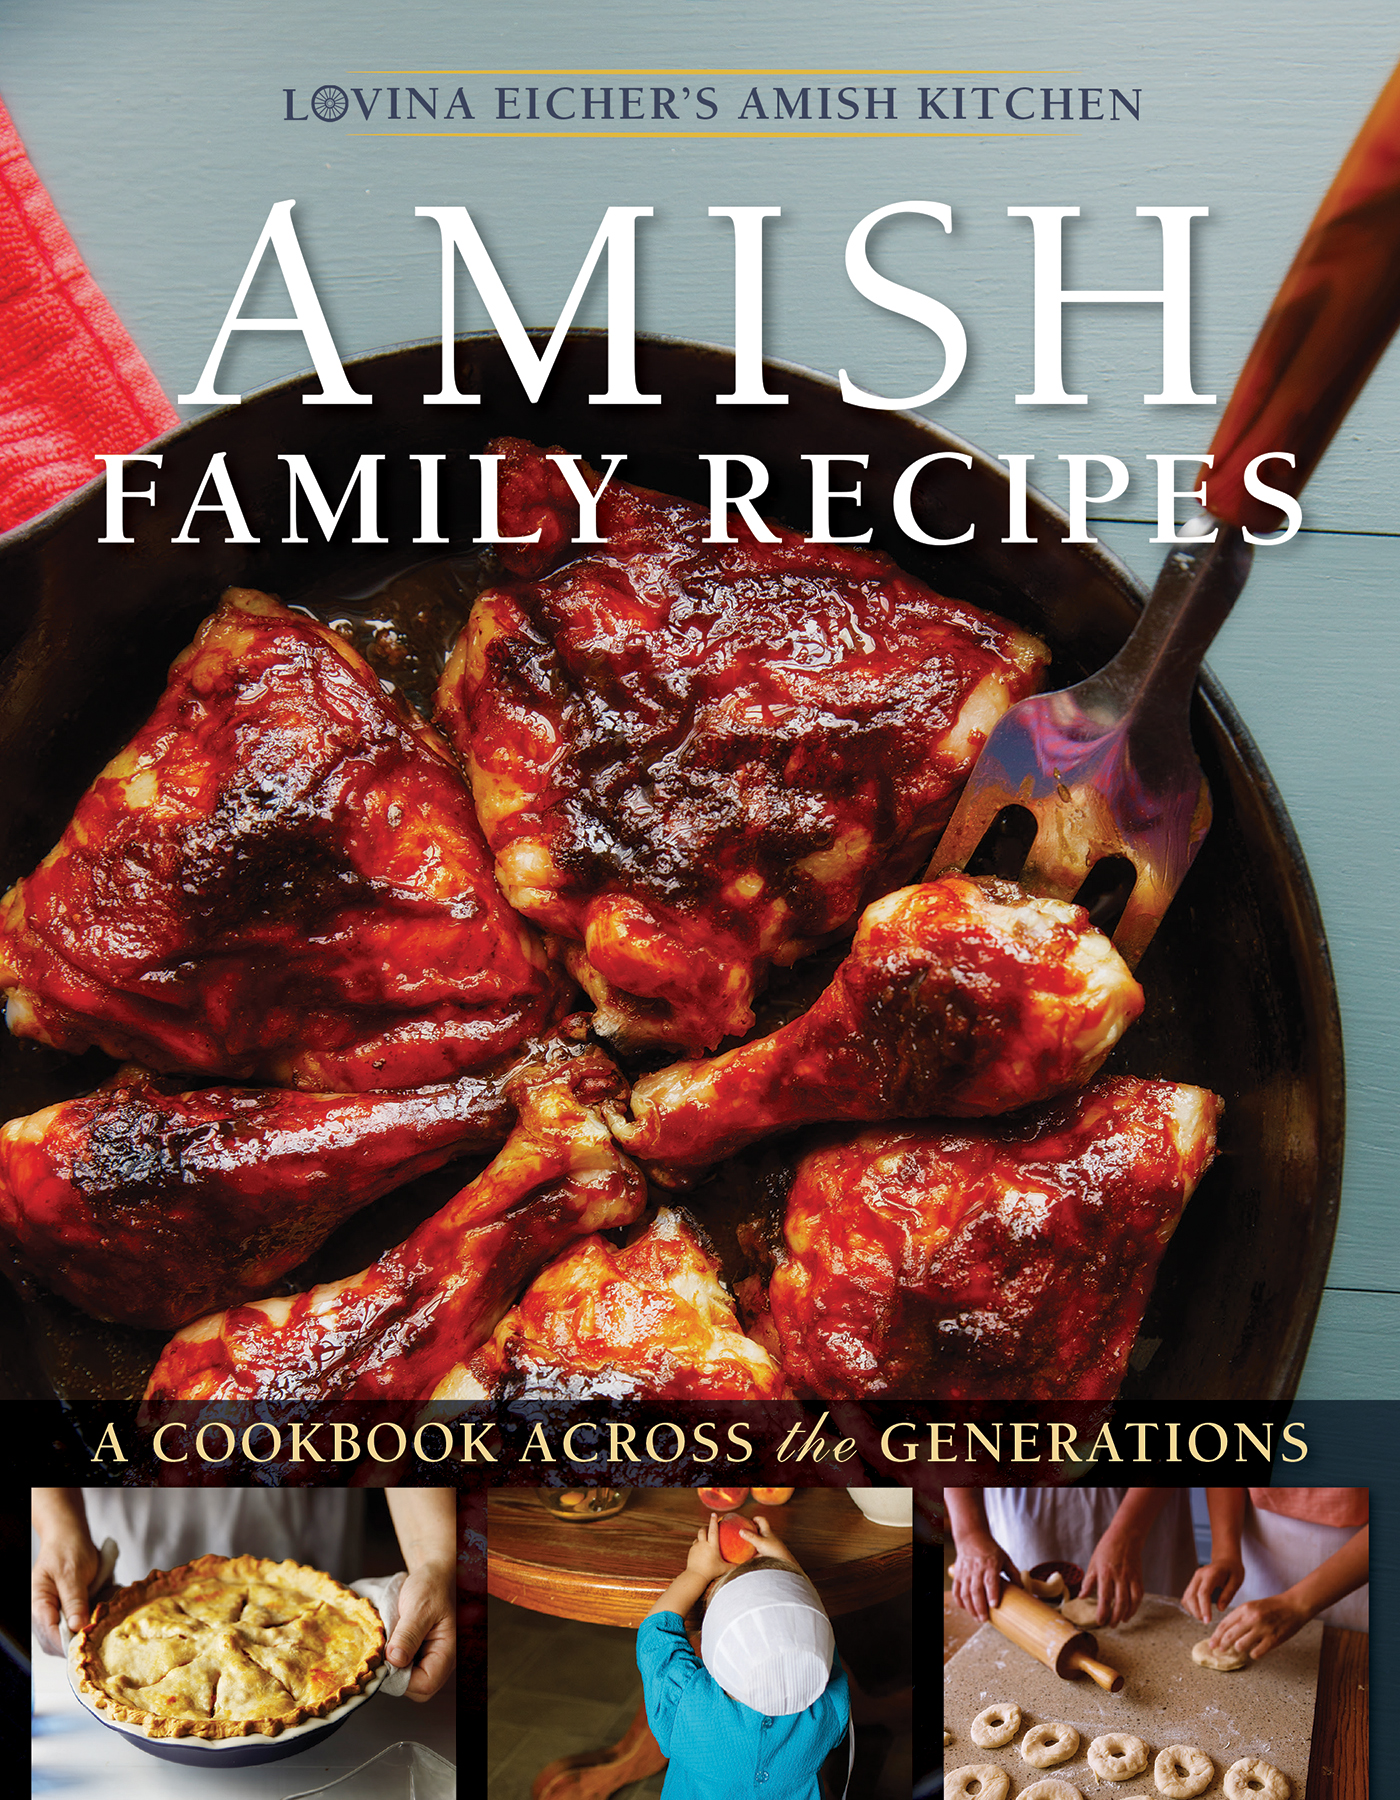 Amish Family Recipes A Cookbook across the Generations